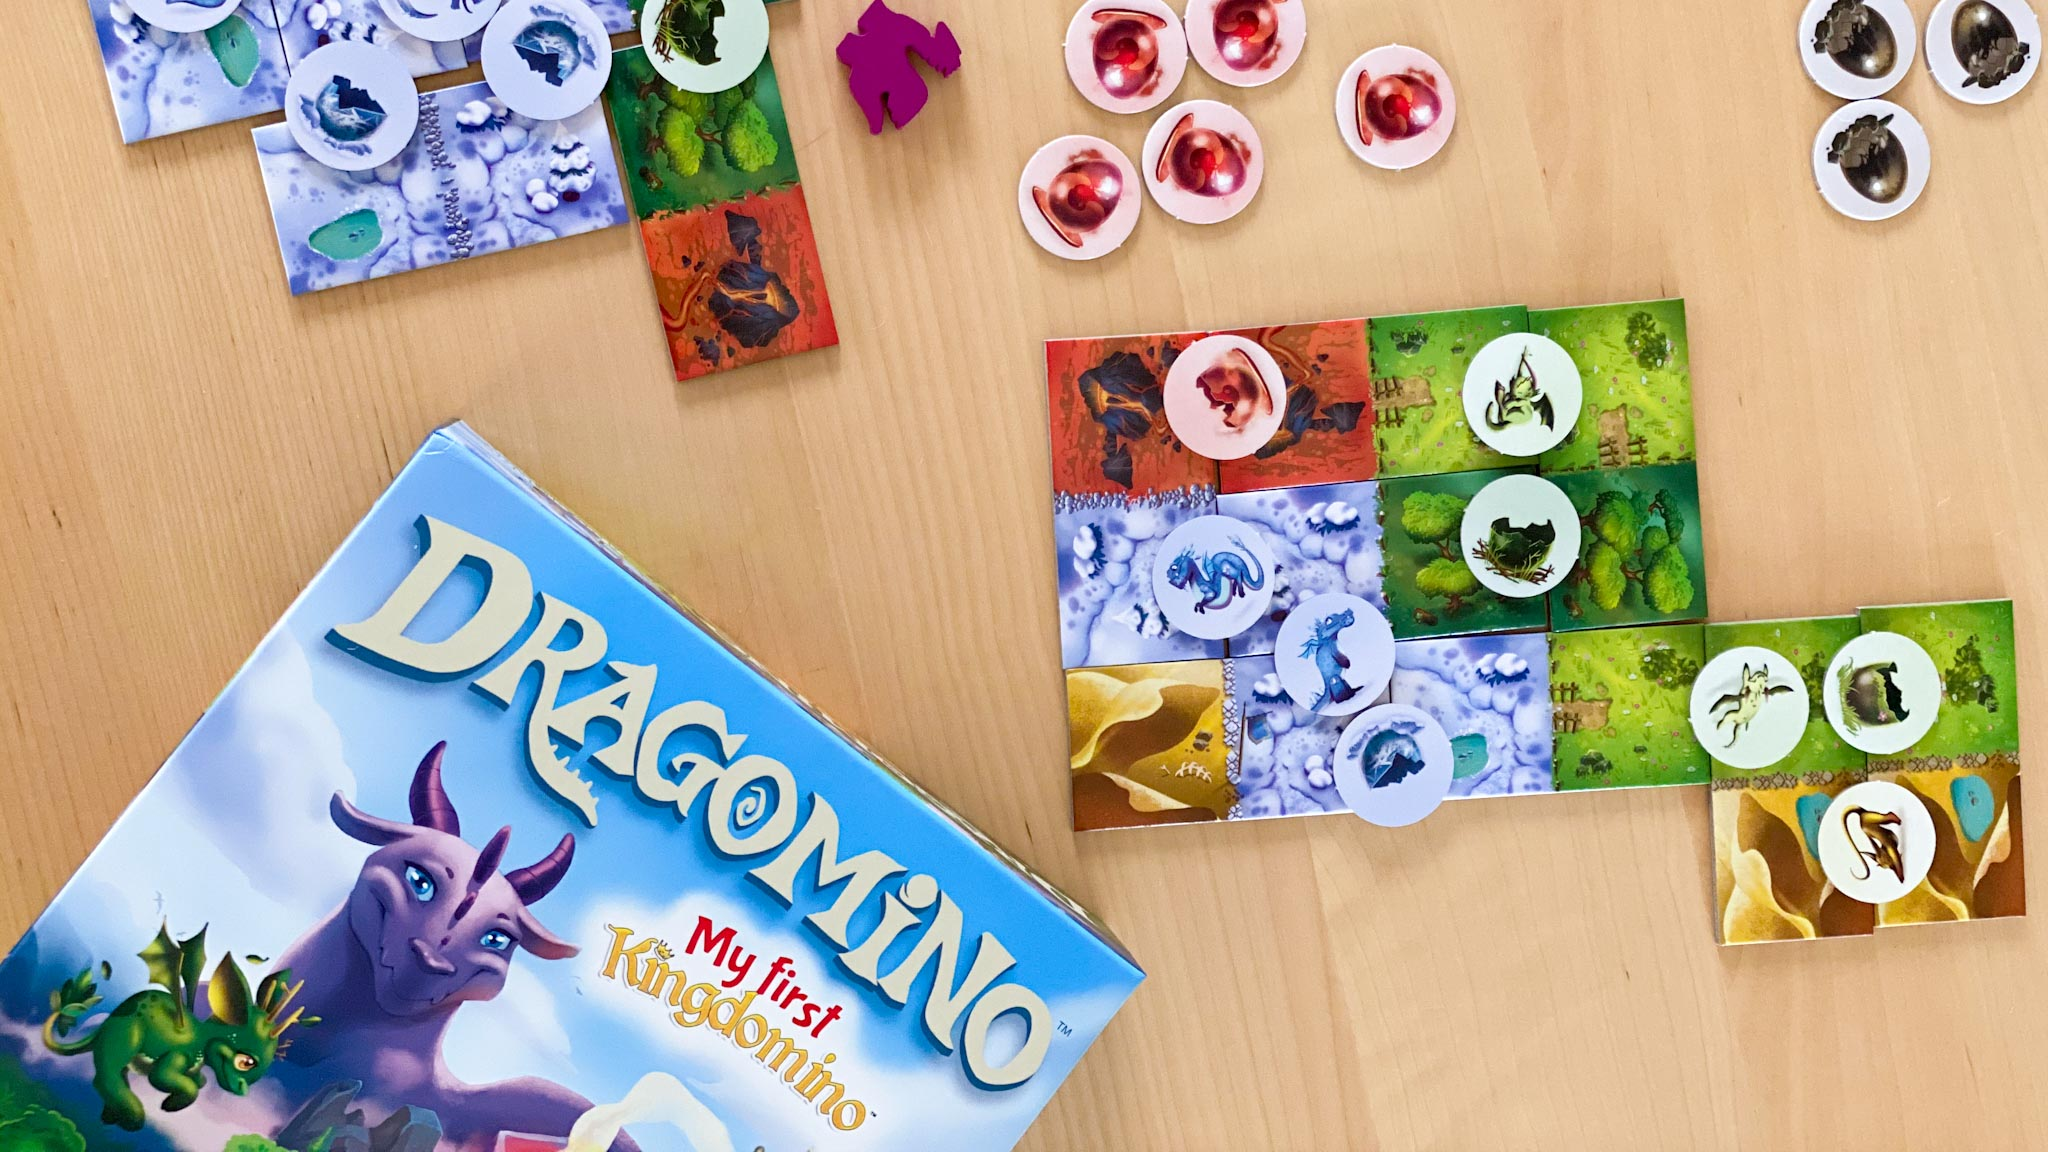 Dragomino Review - The Tabletop Family